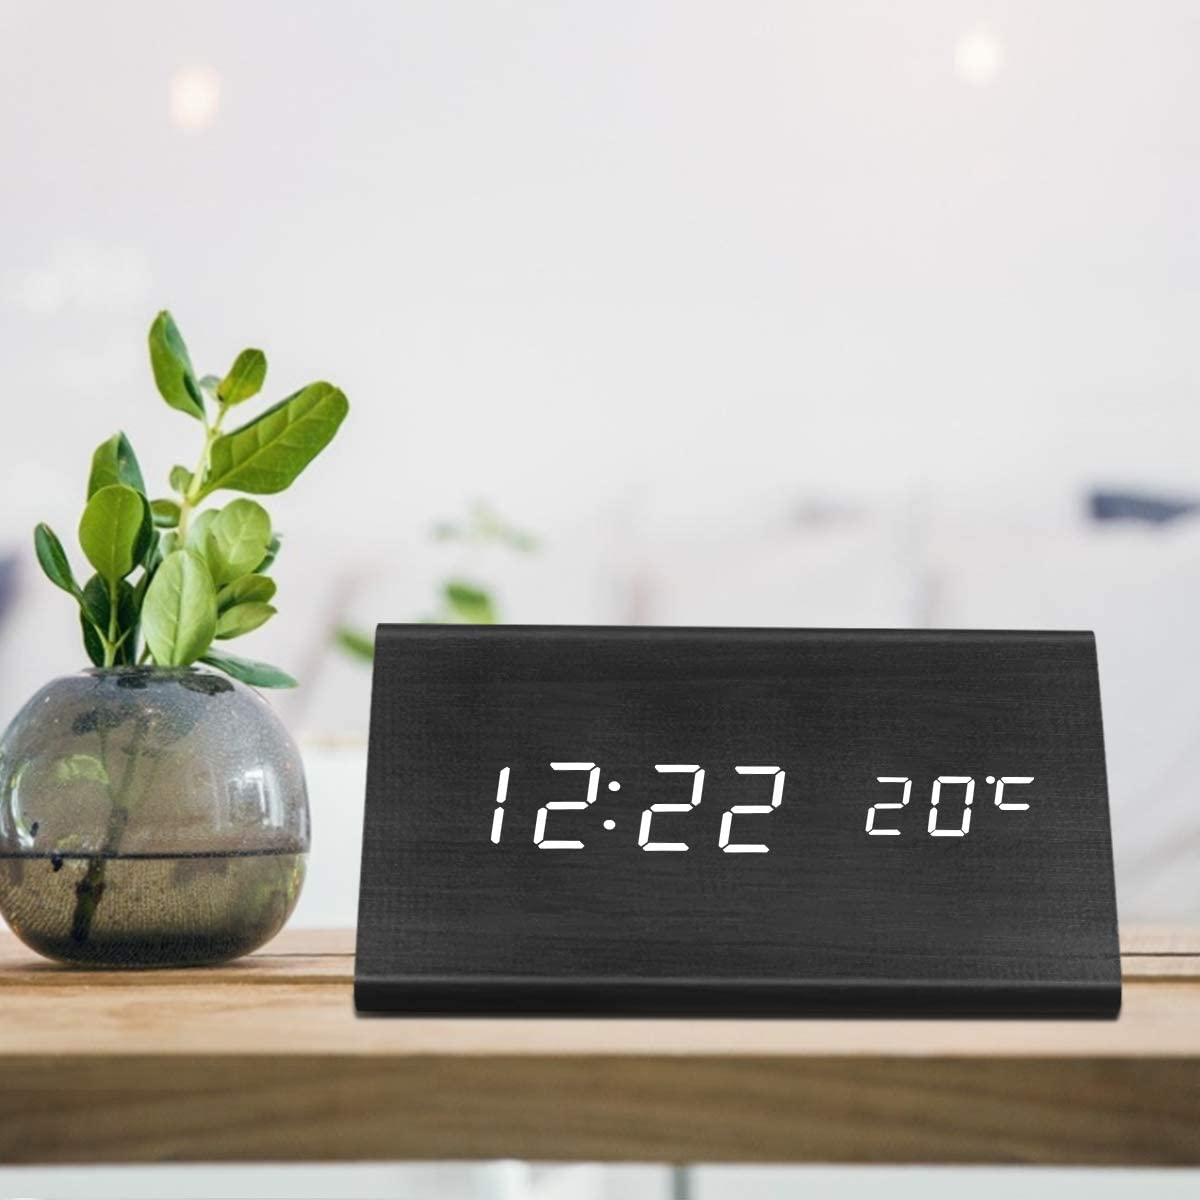 Digital Alarm Clock, Triangle Wooden Clock with LED Time Display, 3 Alarm Settings, Humidity Temperature, Electric Clocks for Bedroom Bedside, Black